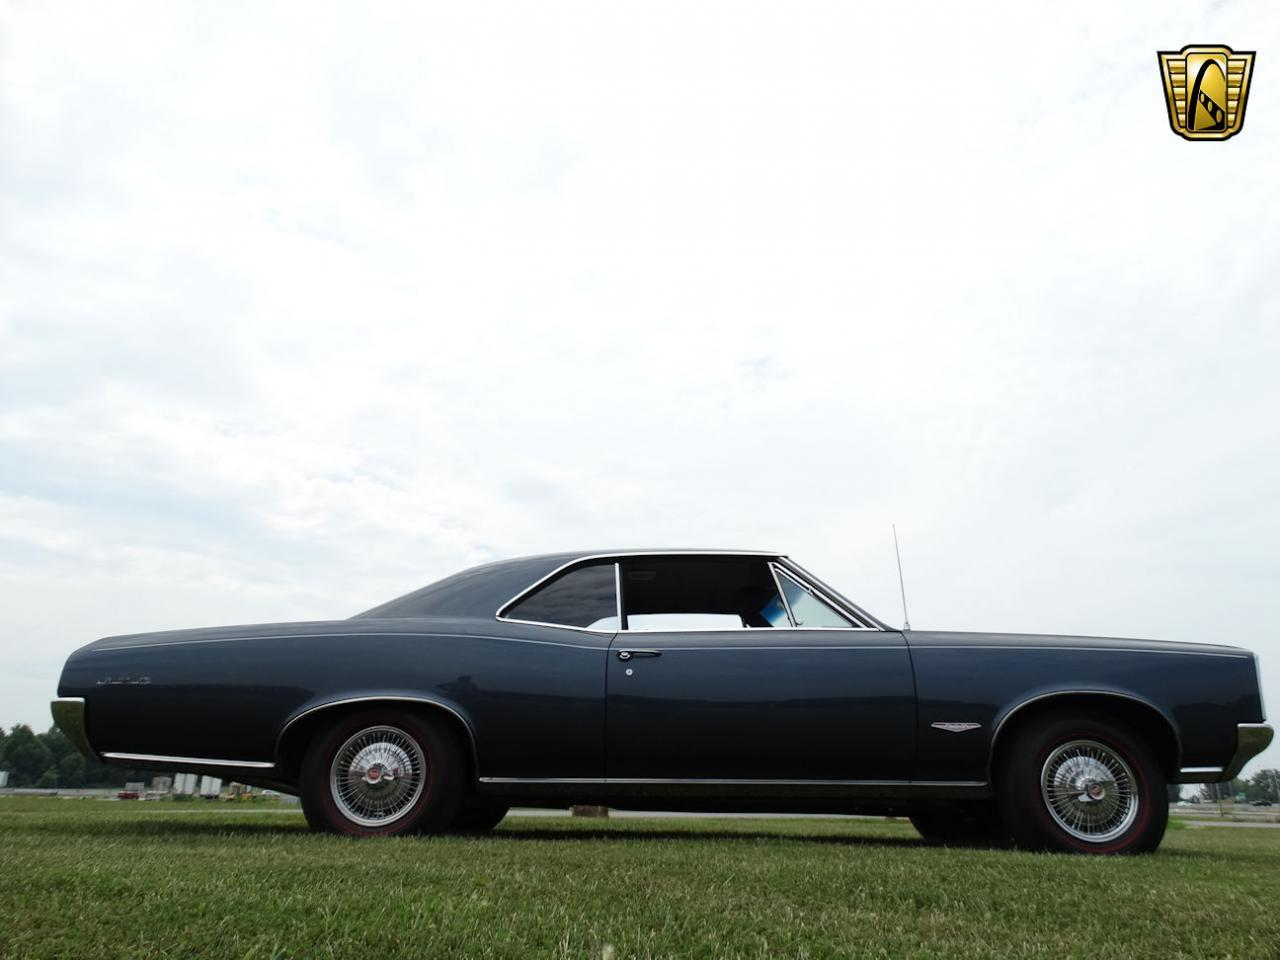 Large Picture of 1966 Pontiac GTO located in Indiana - $58,000.00 - LHK2